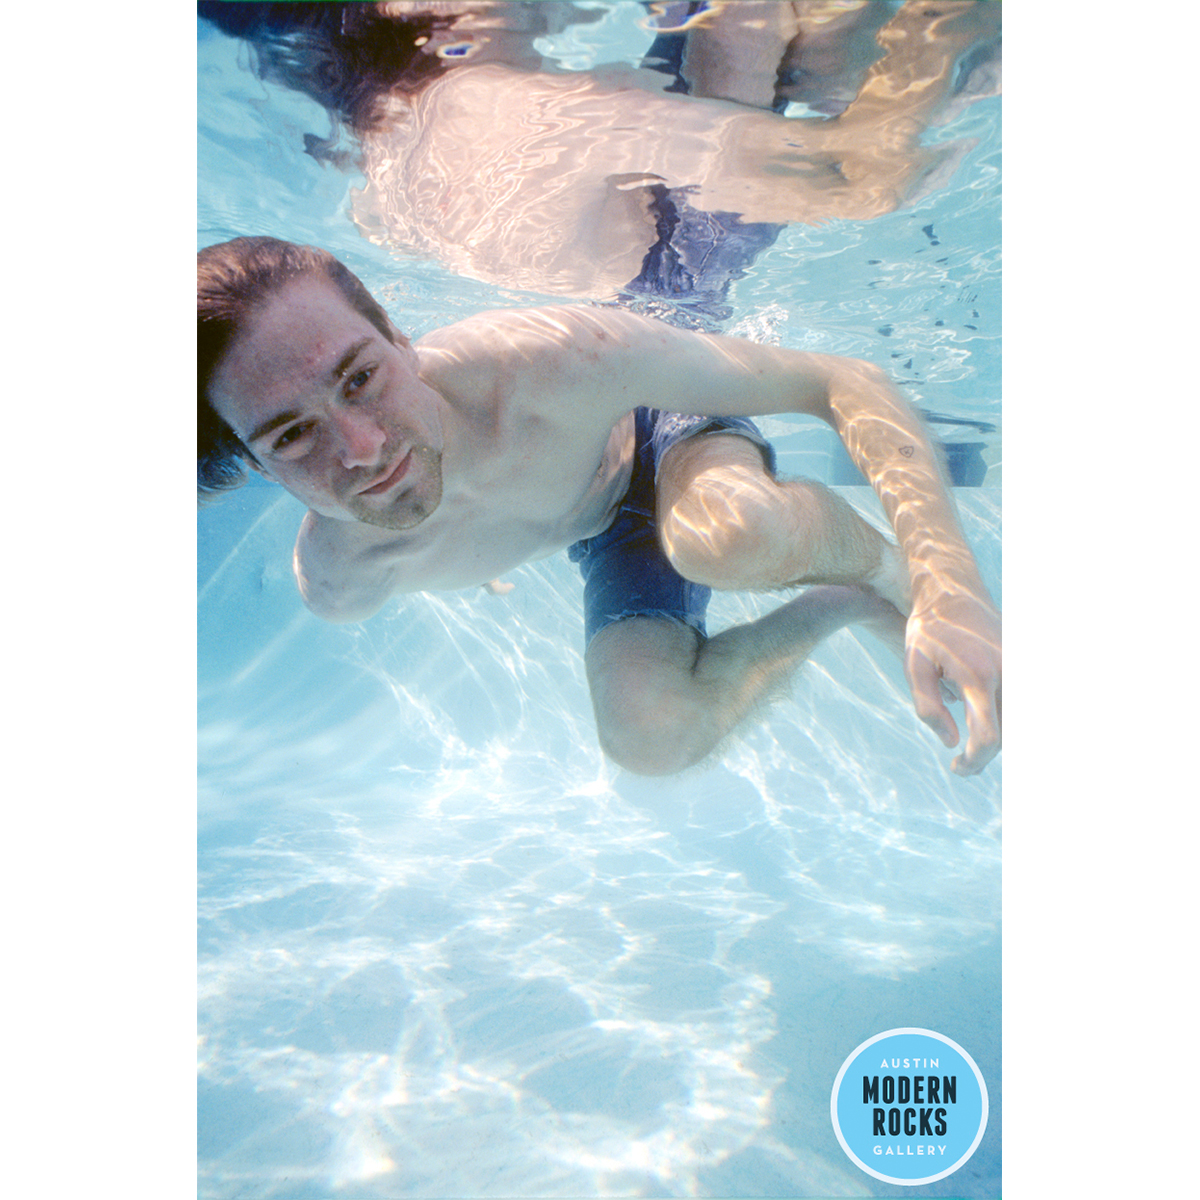 Kurt Cobain Nirvana Nevermind Swimming Pool Photo — Buy Signed Limited  Edition Prints